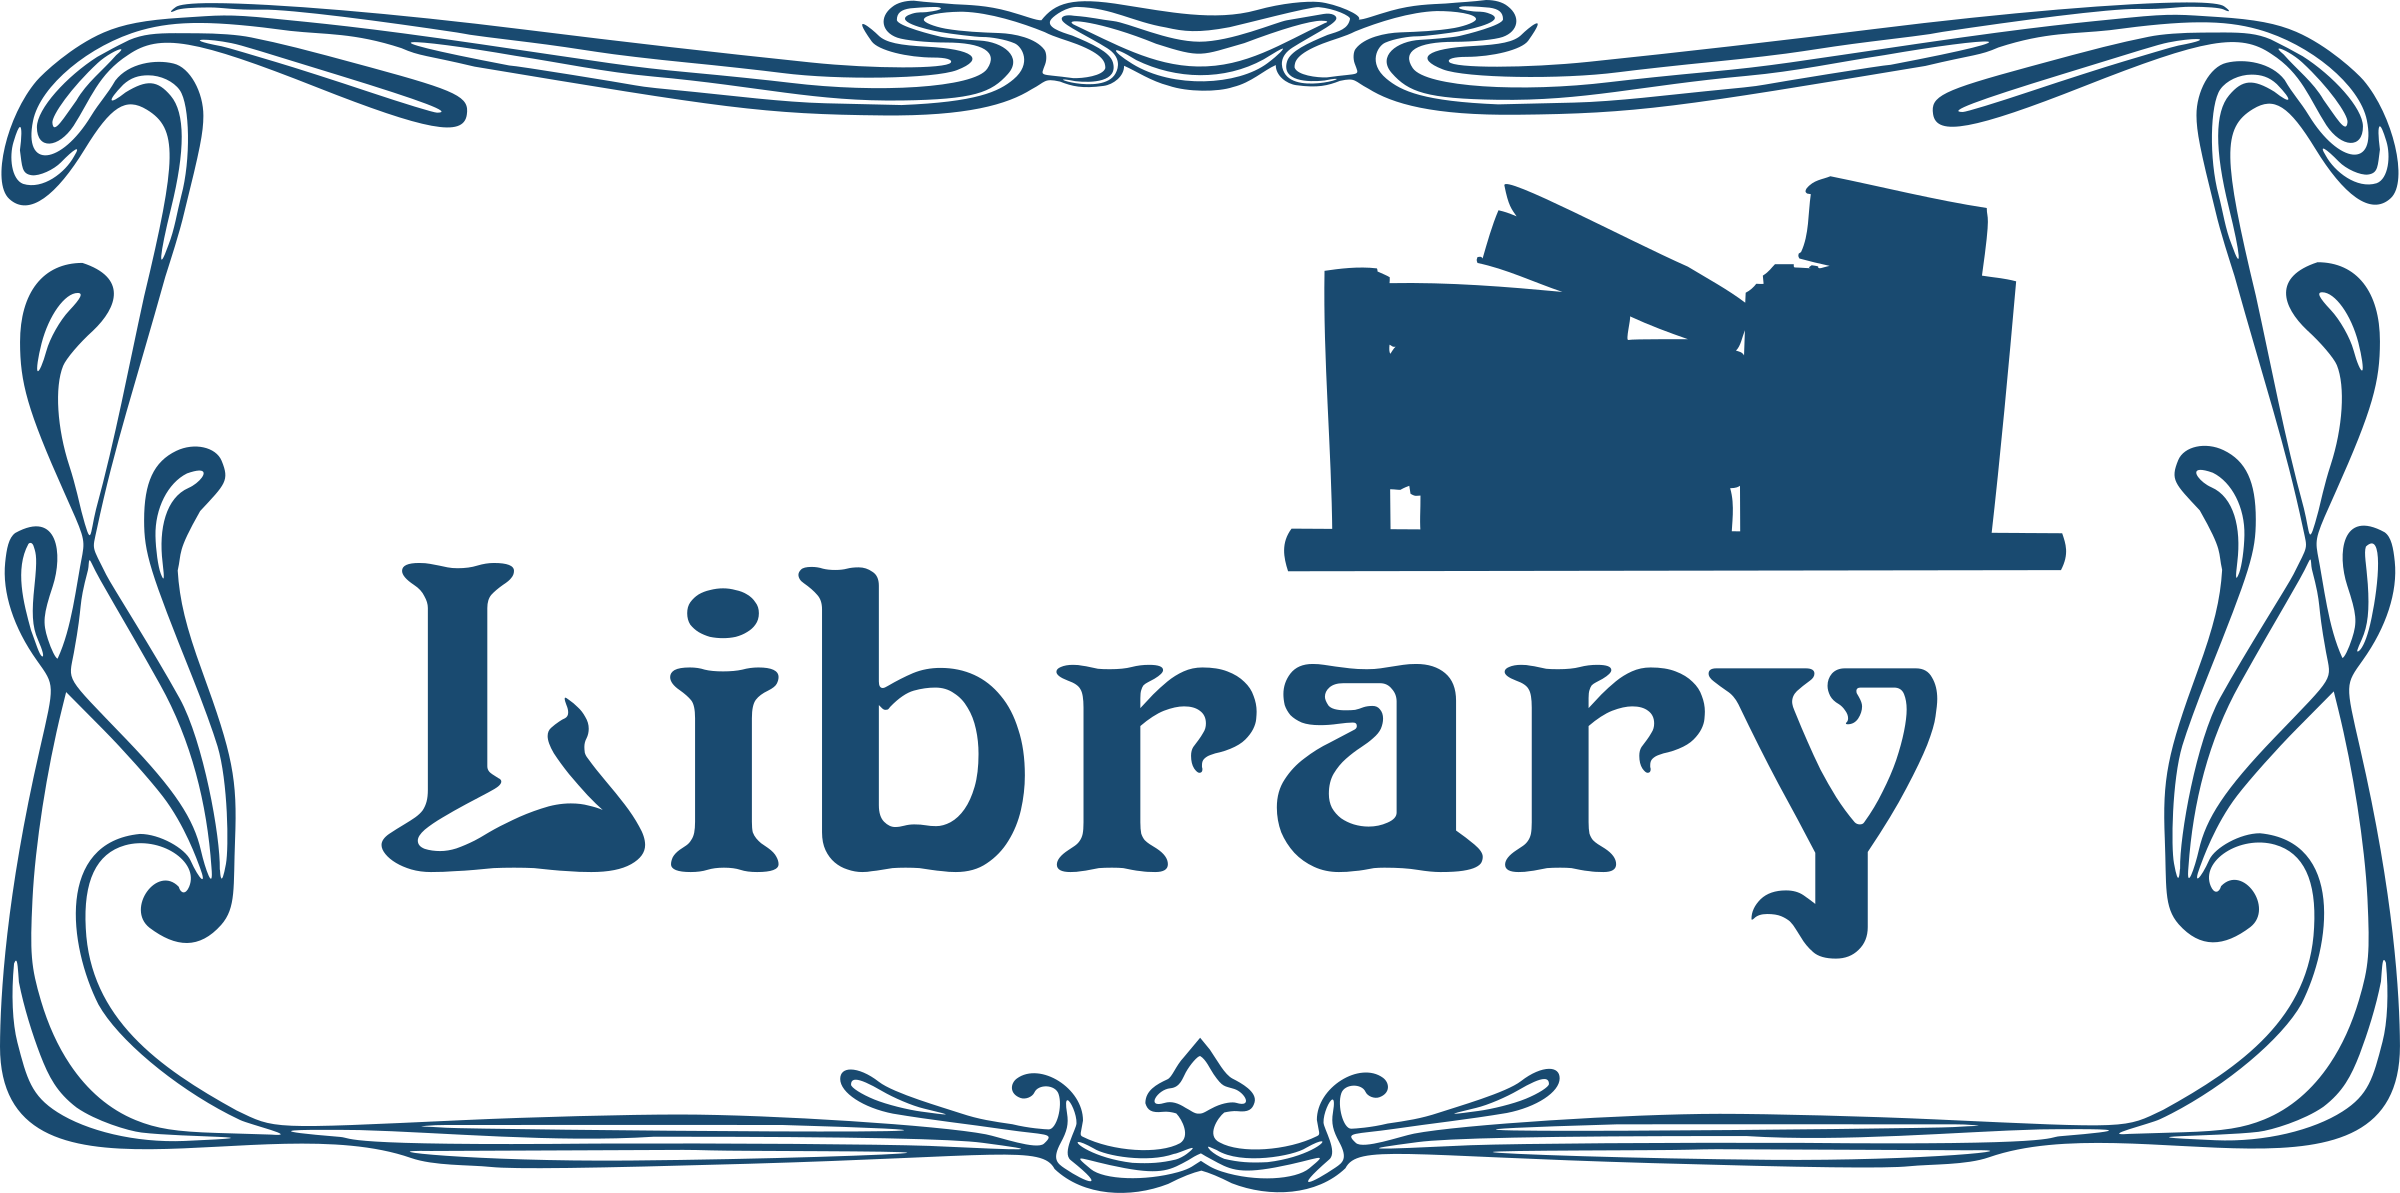 Library clipart sign Art Cliparts Clipart  Library